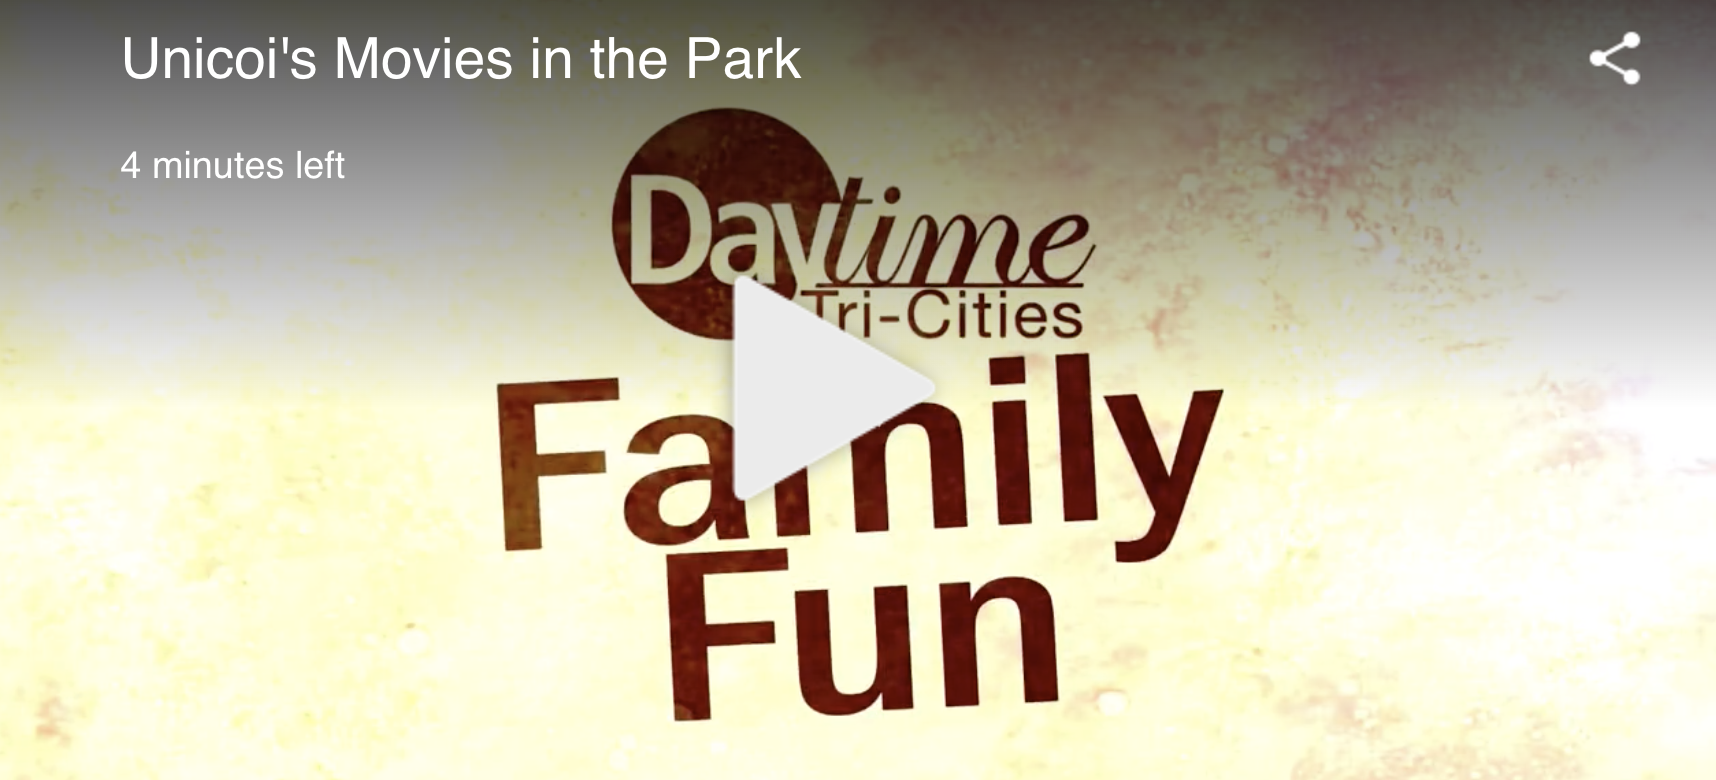 MOVIES IN THE PARK ON DAYTIME!